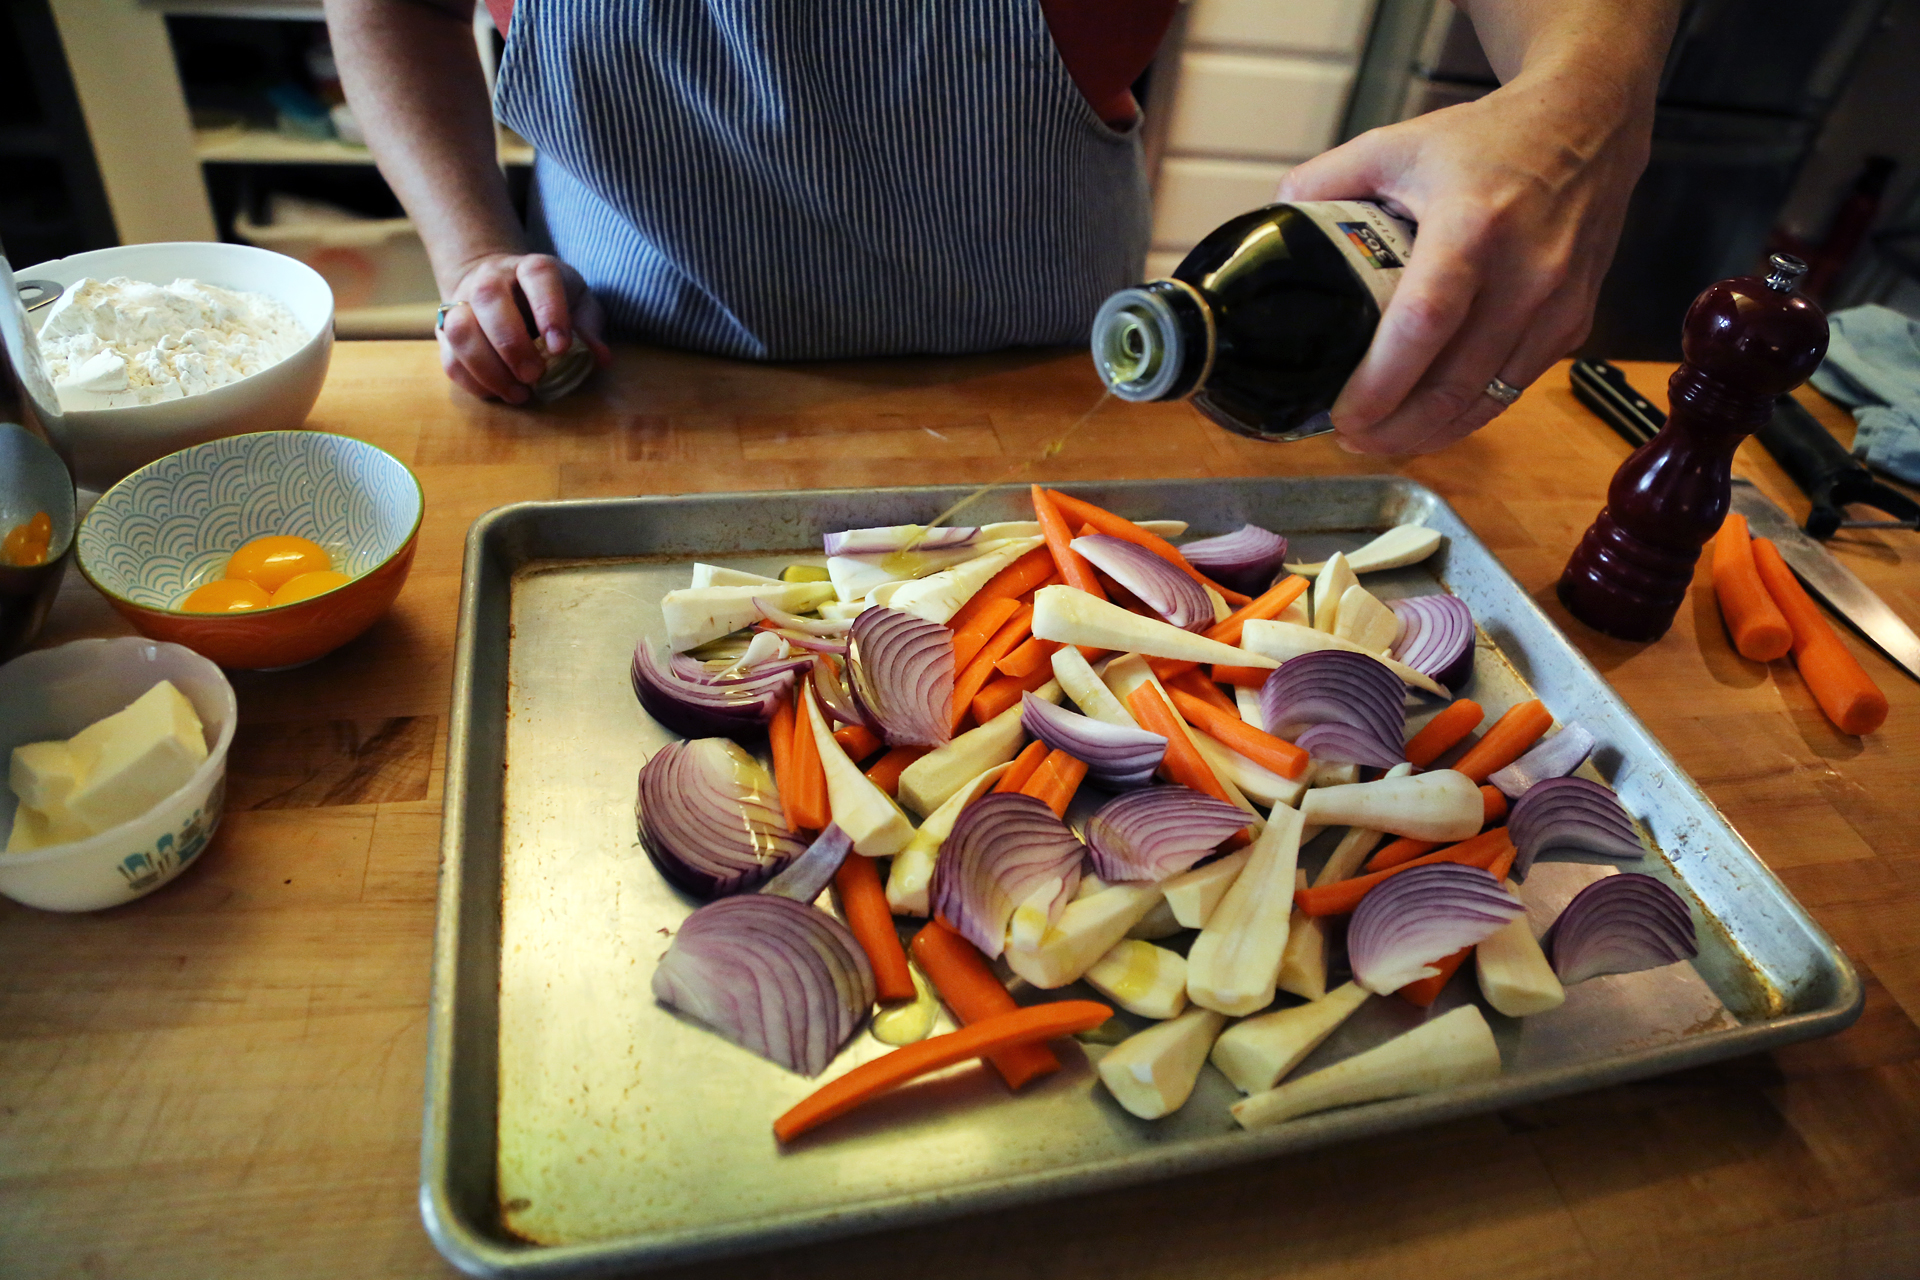 Cut the onion into wedges. Add the vegetables to a large rimmed baking sheet, drizzle with olive oil and toss to coat.